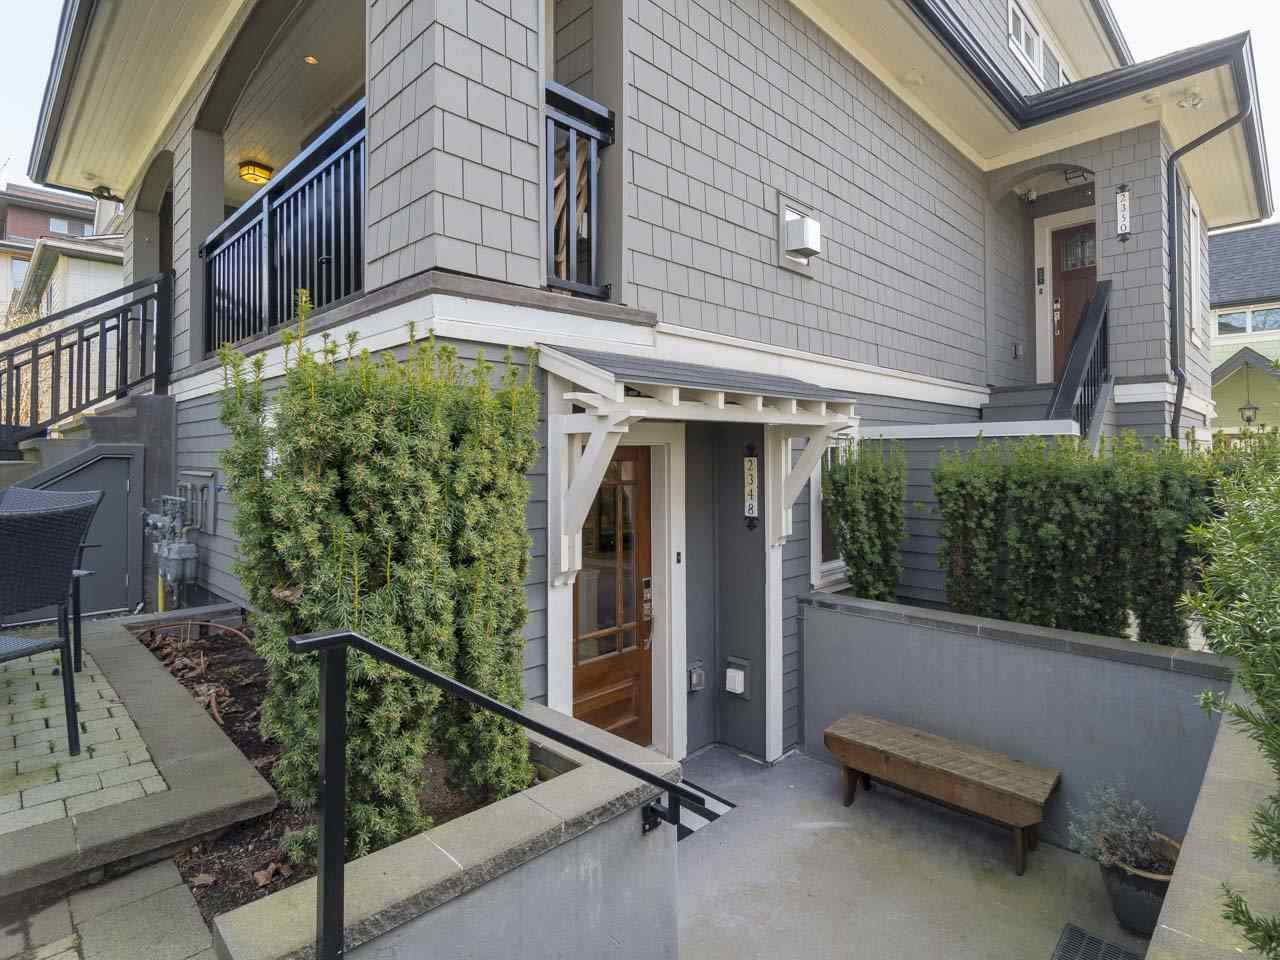 Main Photo: 2348 W 8TH AVENUE in Vancouver: Kitsilano Townhouse for sale (Vancouver West)  : MLS®# R2247812